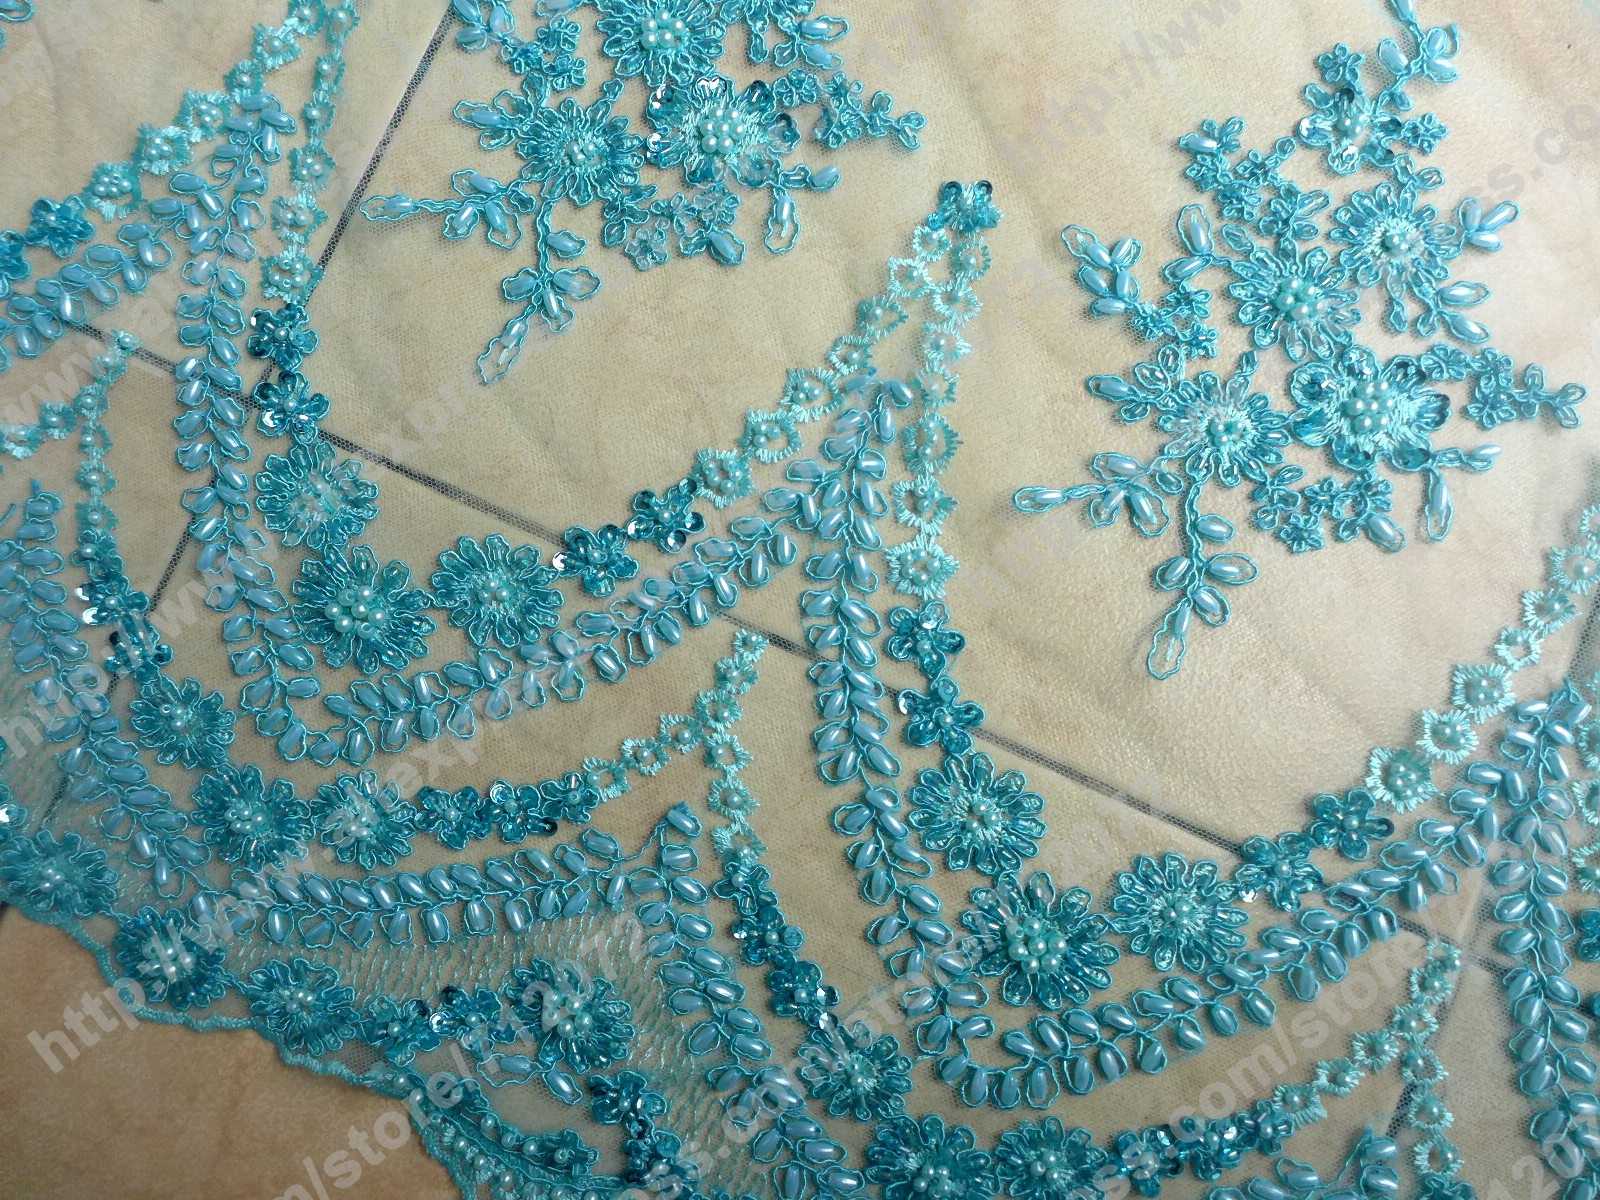 49 Blue Heavy Embroidery Fabric High End Handmade White